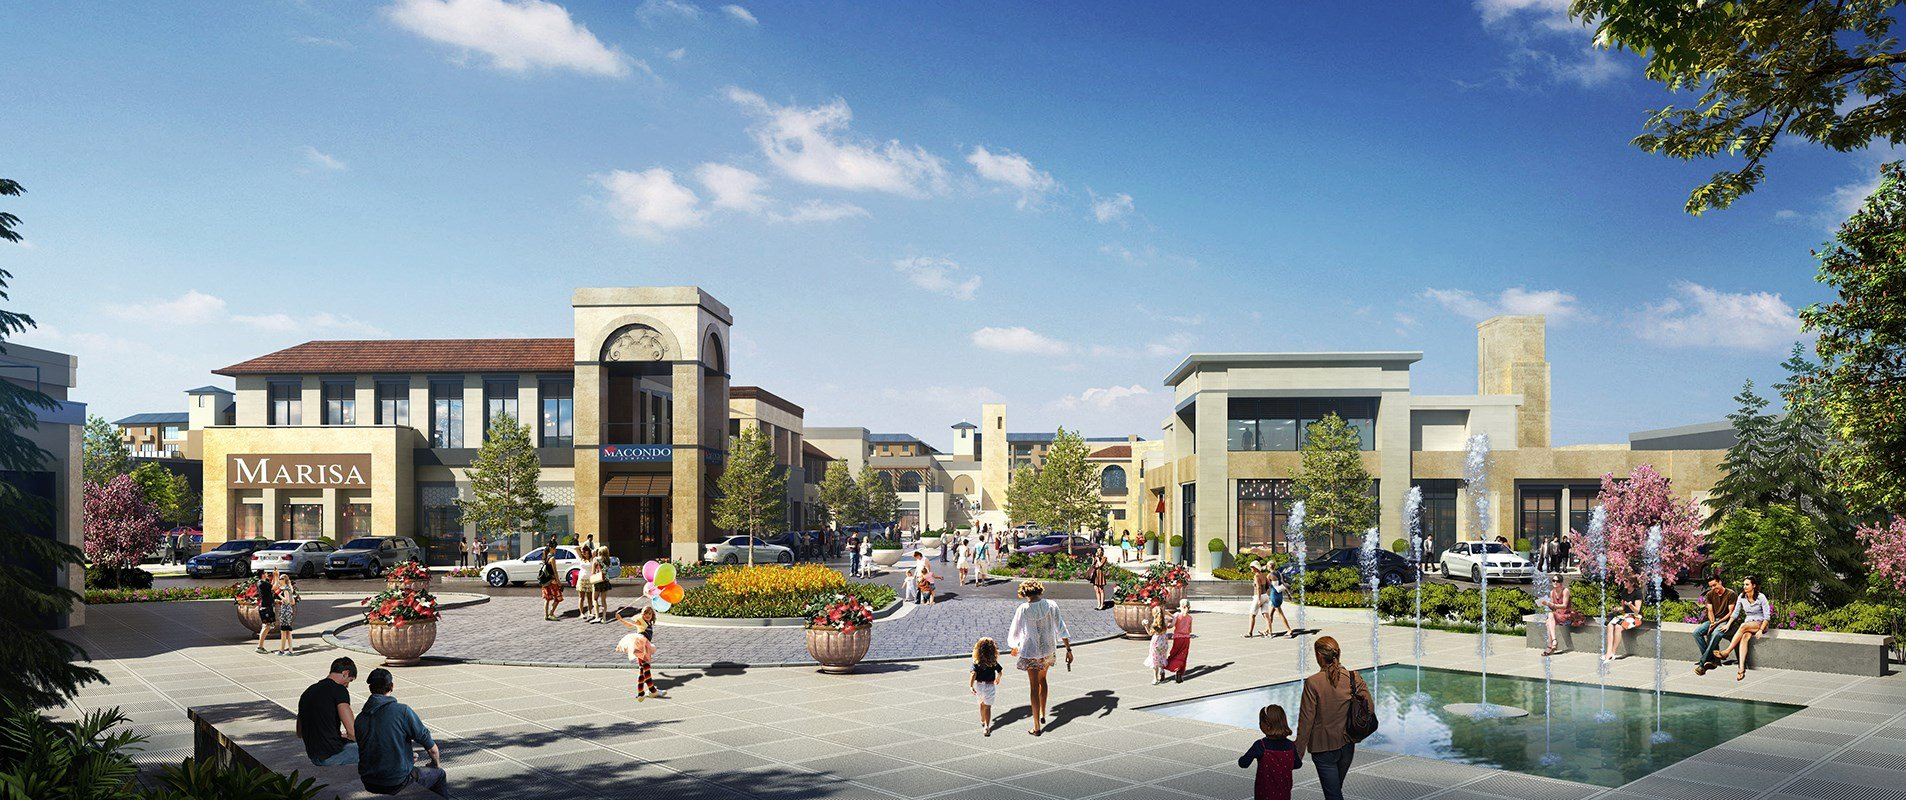 Proposed redevelopment plan scrapped